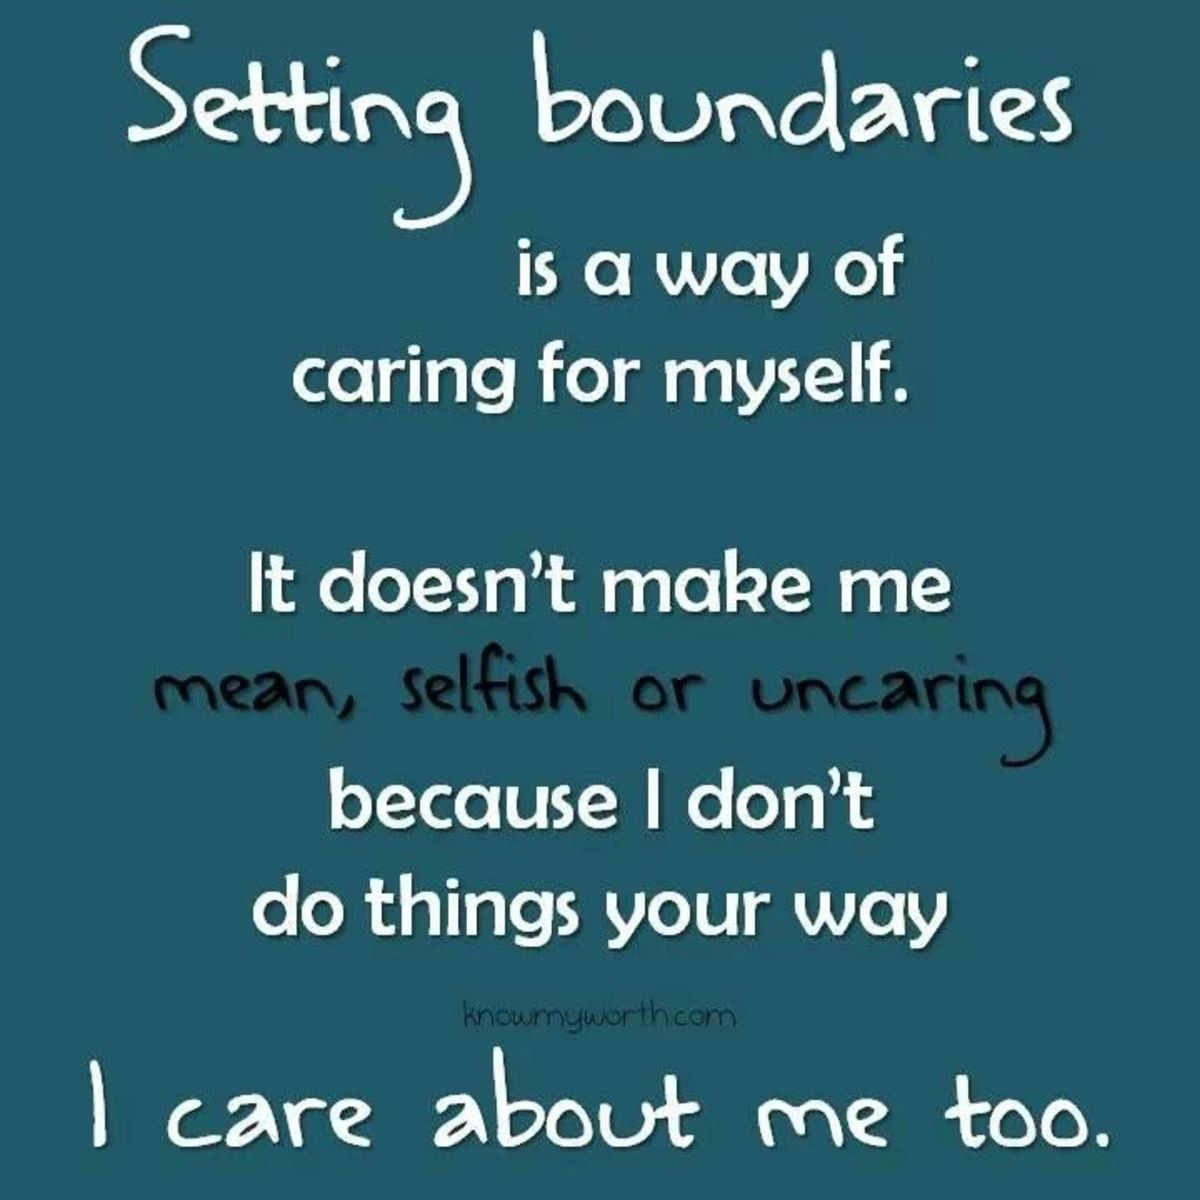 boundaries-what-they-are-why-theyre-important-and-how-to-set-them